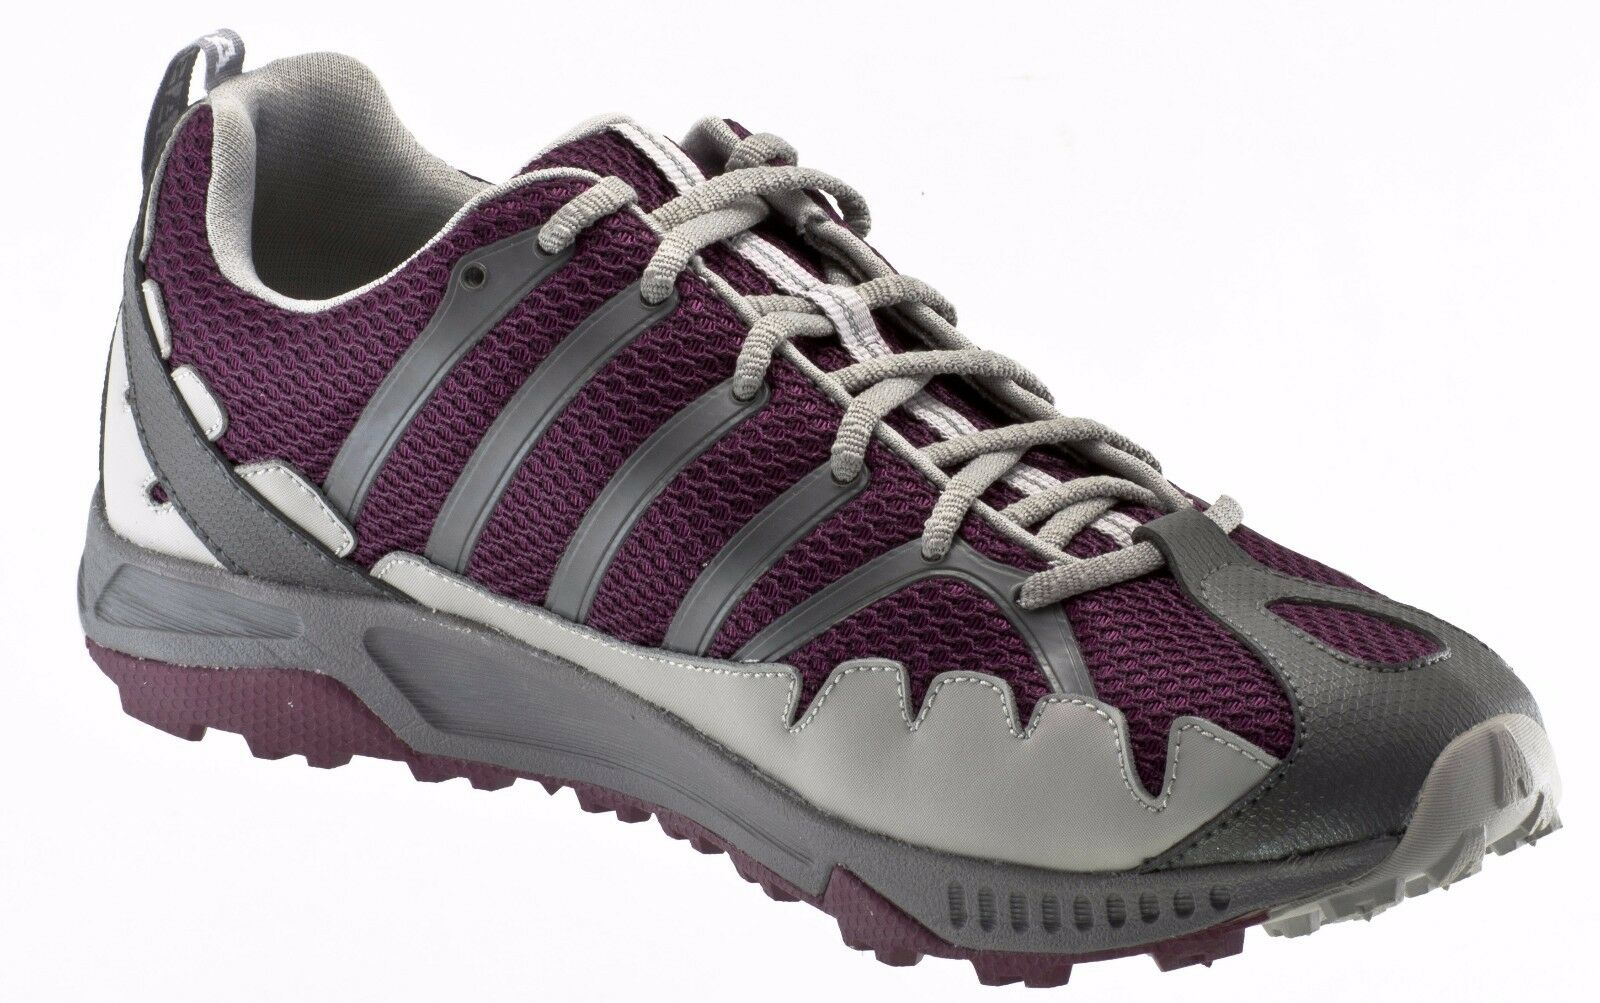 SCARPA WOMEN'S SS12 TEMPO TRAIL RUNNING LIGHTWEIGHT MINIMALIST SHOES US 7